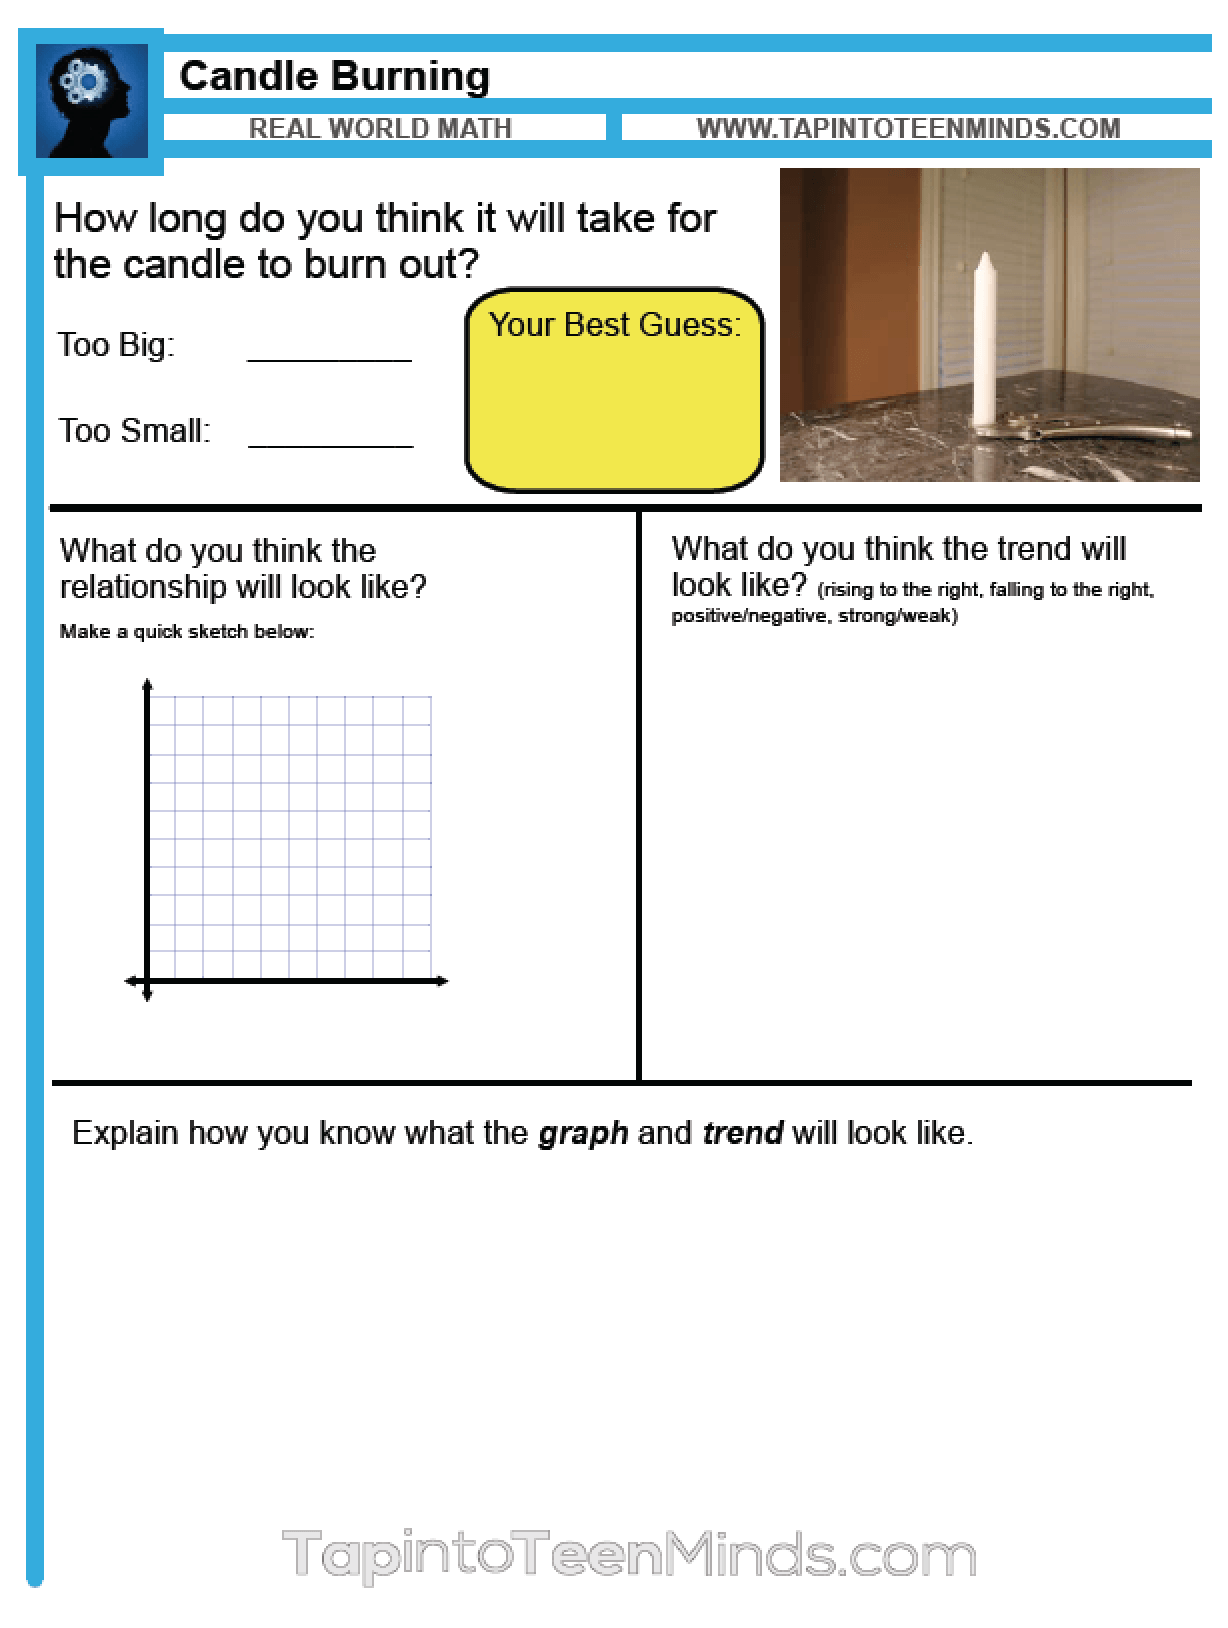 Candle Burning 3 Act Math Task Resource - Tap Into Teen Minds